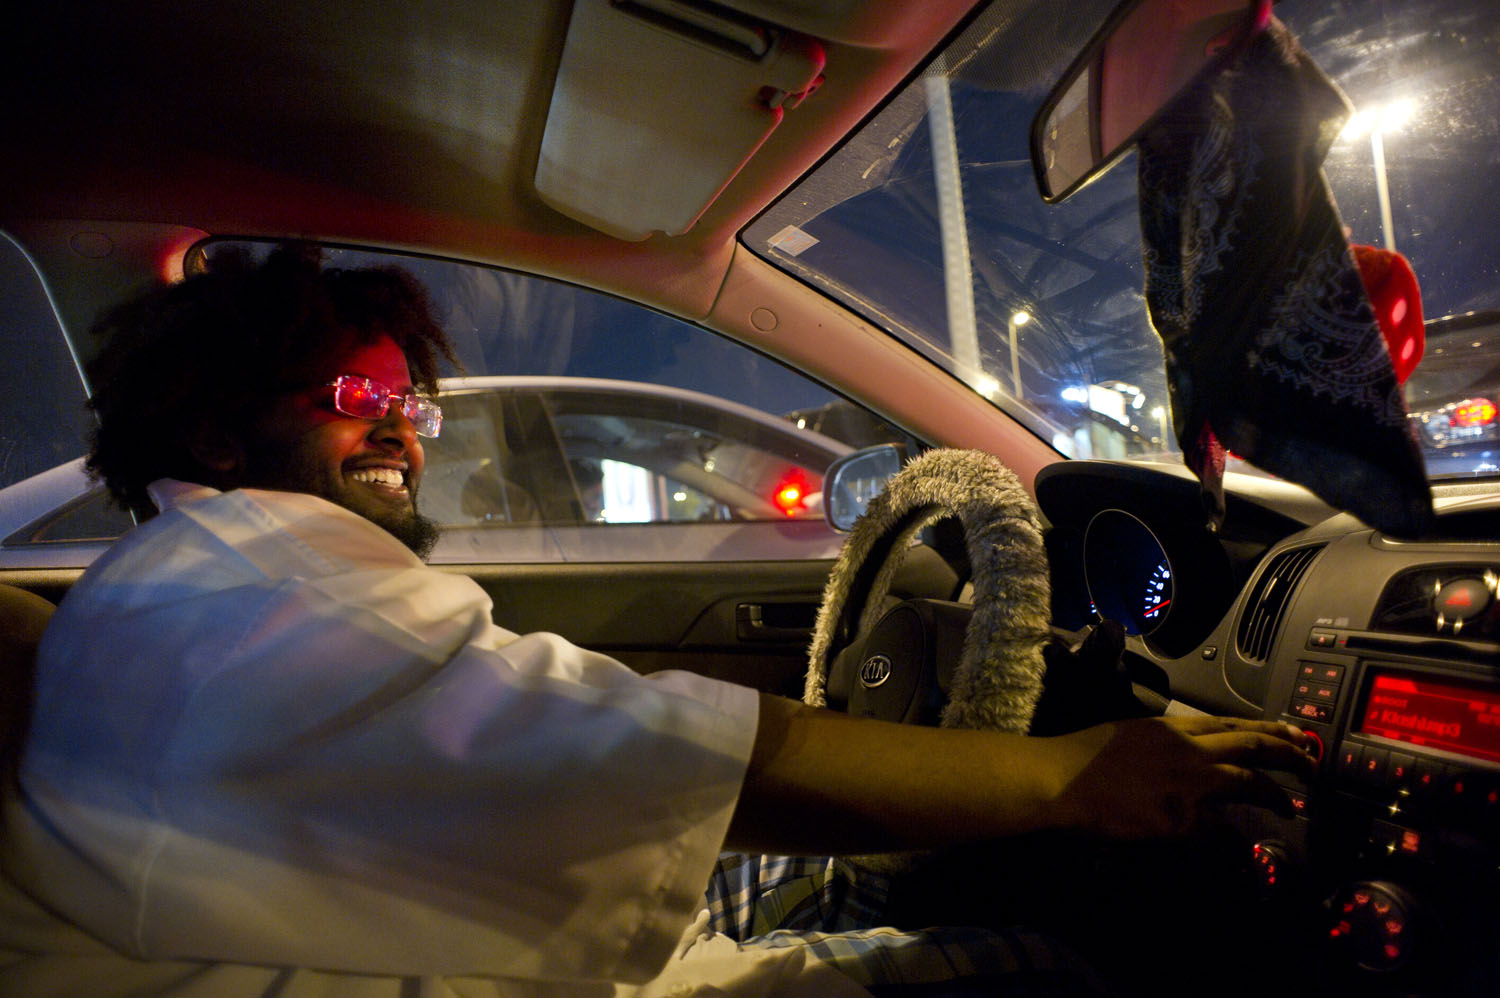 Saudi Hip Hop artist Joe Werede rides around listening to his latest album in Jeddah, Saudi Arabia, June 15, 2011. Joe is part of a very small group of Saudi musicians in the country. Their group, named Black R, has already sold 95,000 albums in and around the Kingdom.